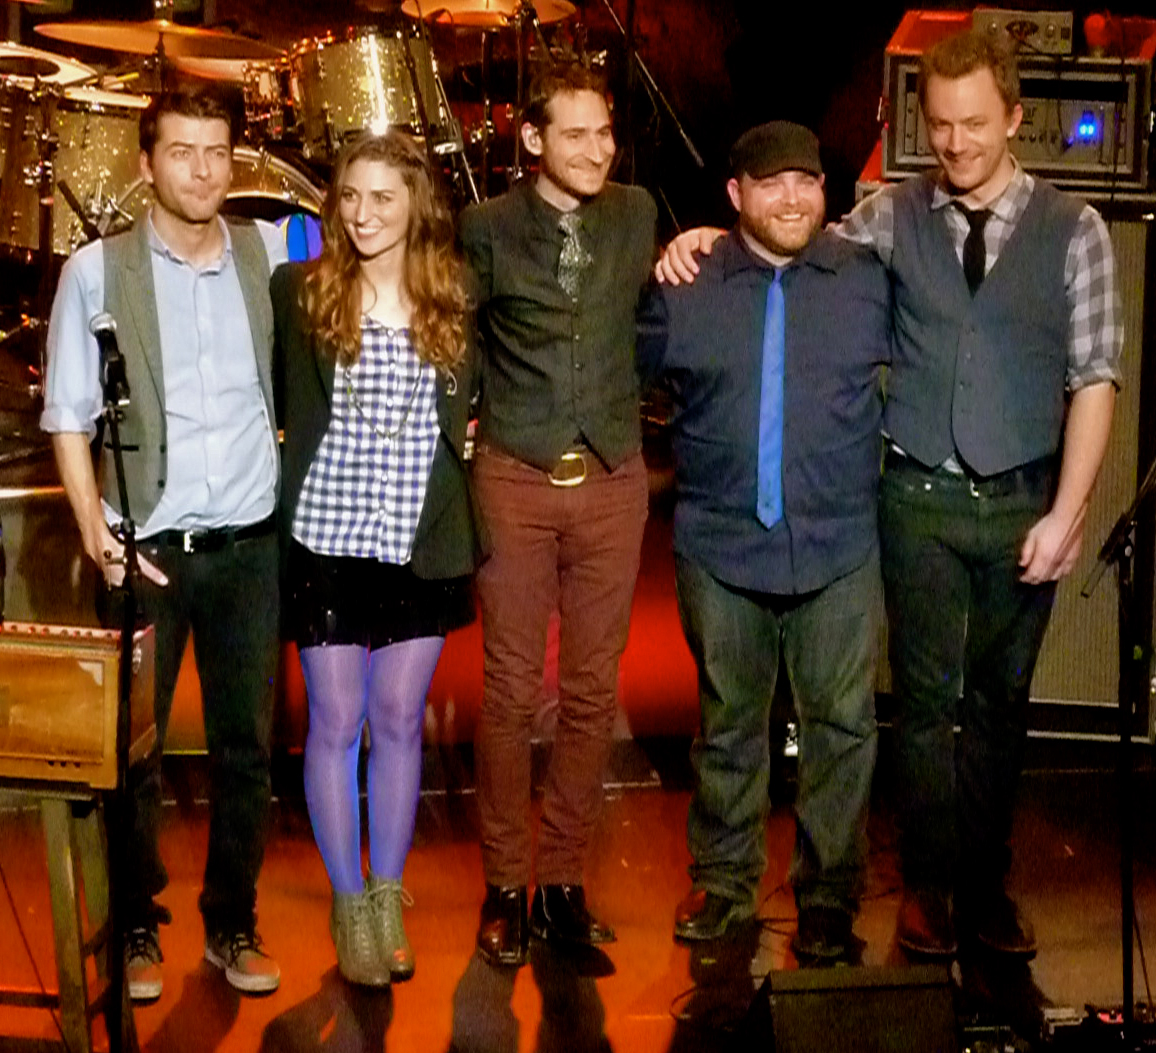 Bareilles and her former band during her Kaleidoscope Heart Tour at the Warfield on December 16, 2010. Left to right: Javier Dunn, Bareilles, Philip Krohnengold, Josh Day, Daniel Rhine